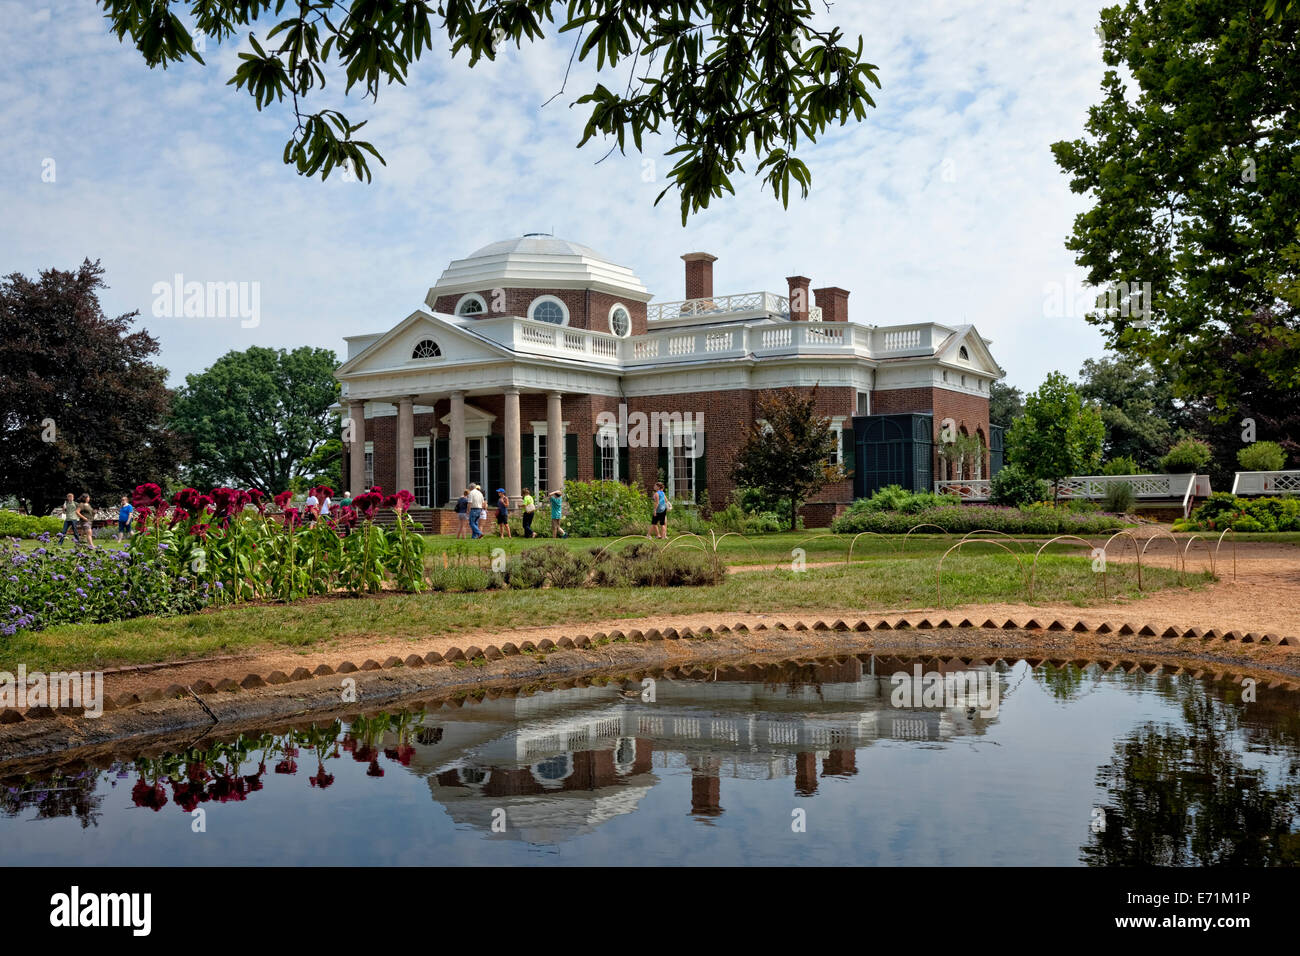 Thomas Jefferson's Home - Monticello, VA Photo Stock